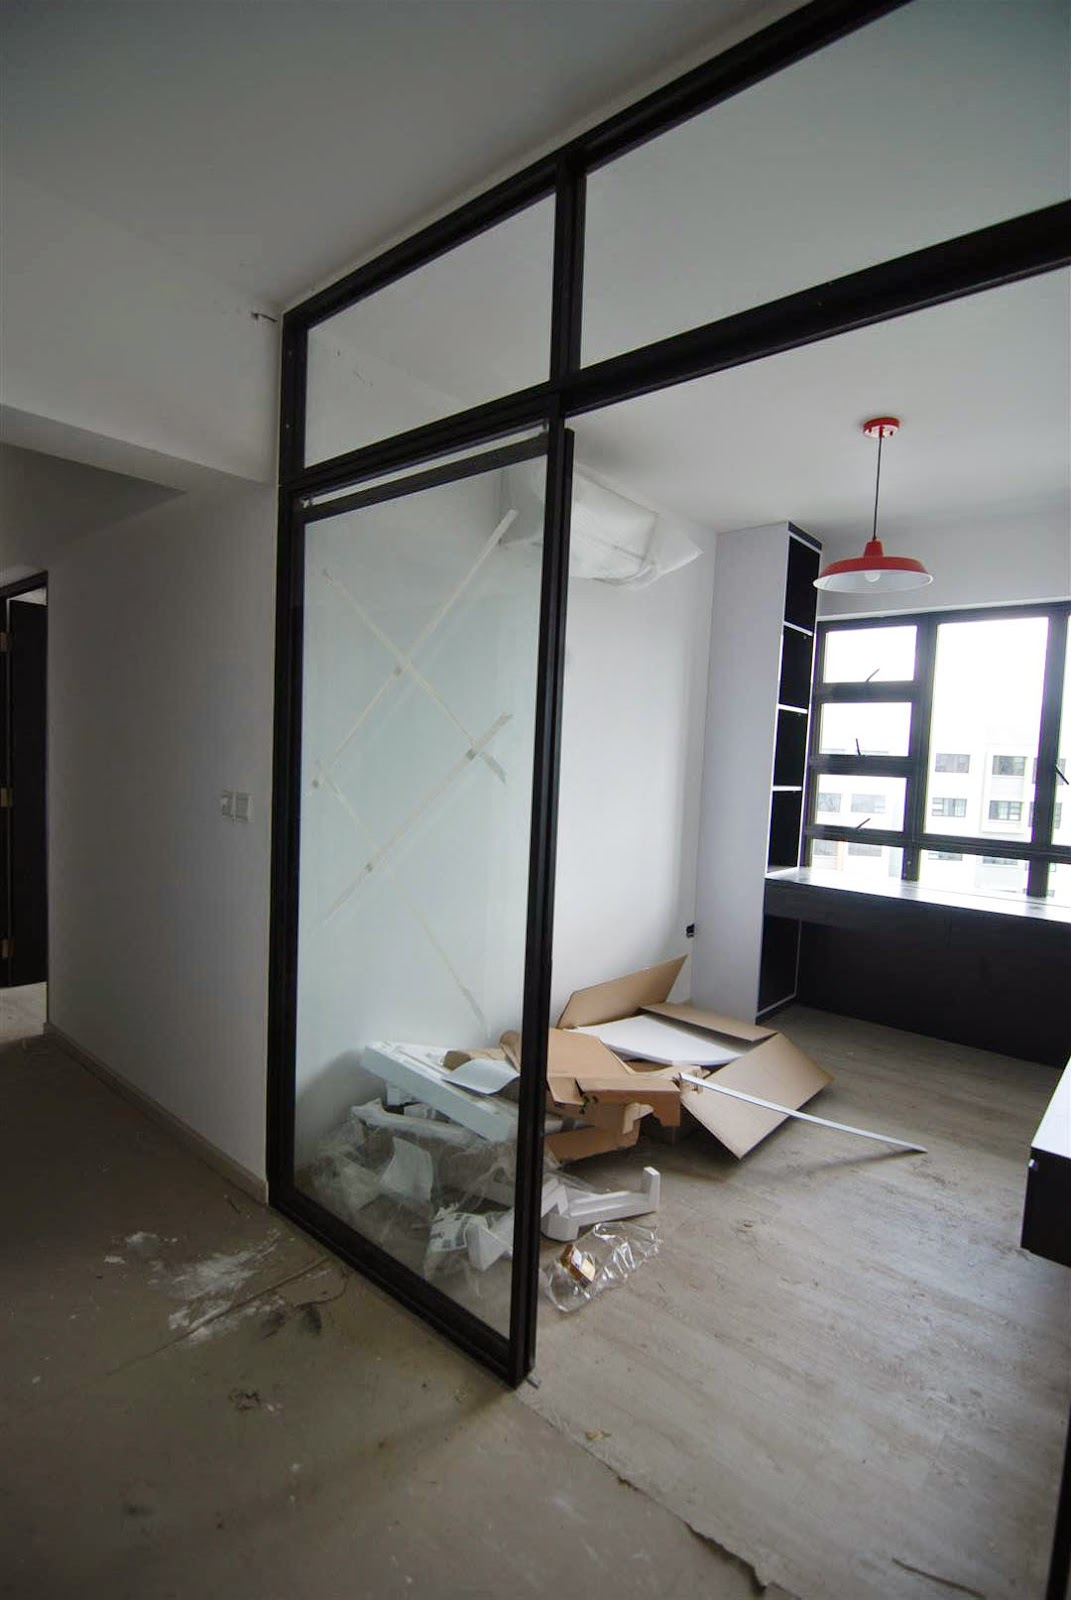 Butterpaperstudio reno yishun riverwalk study room for Room door frame